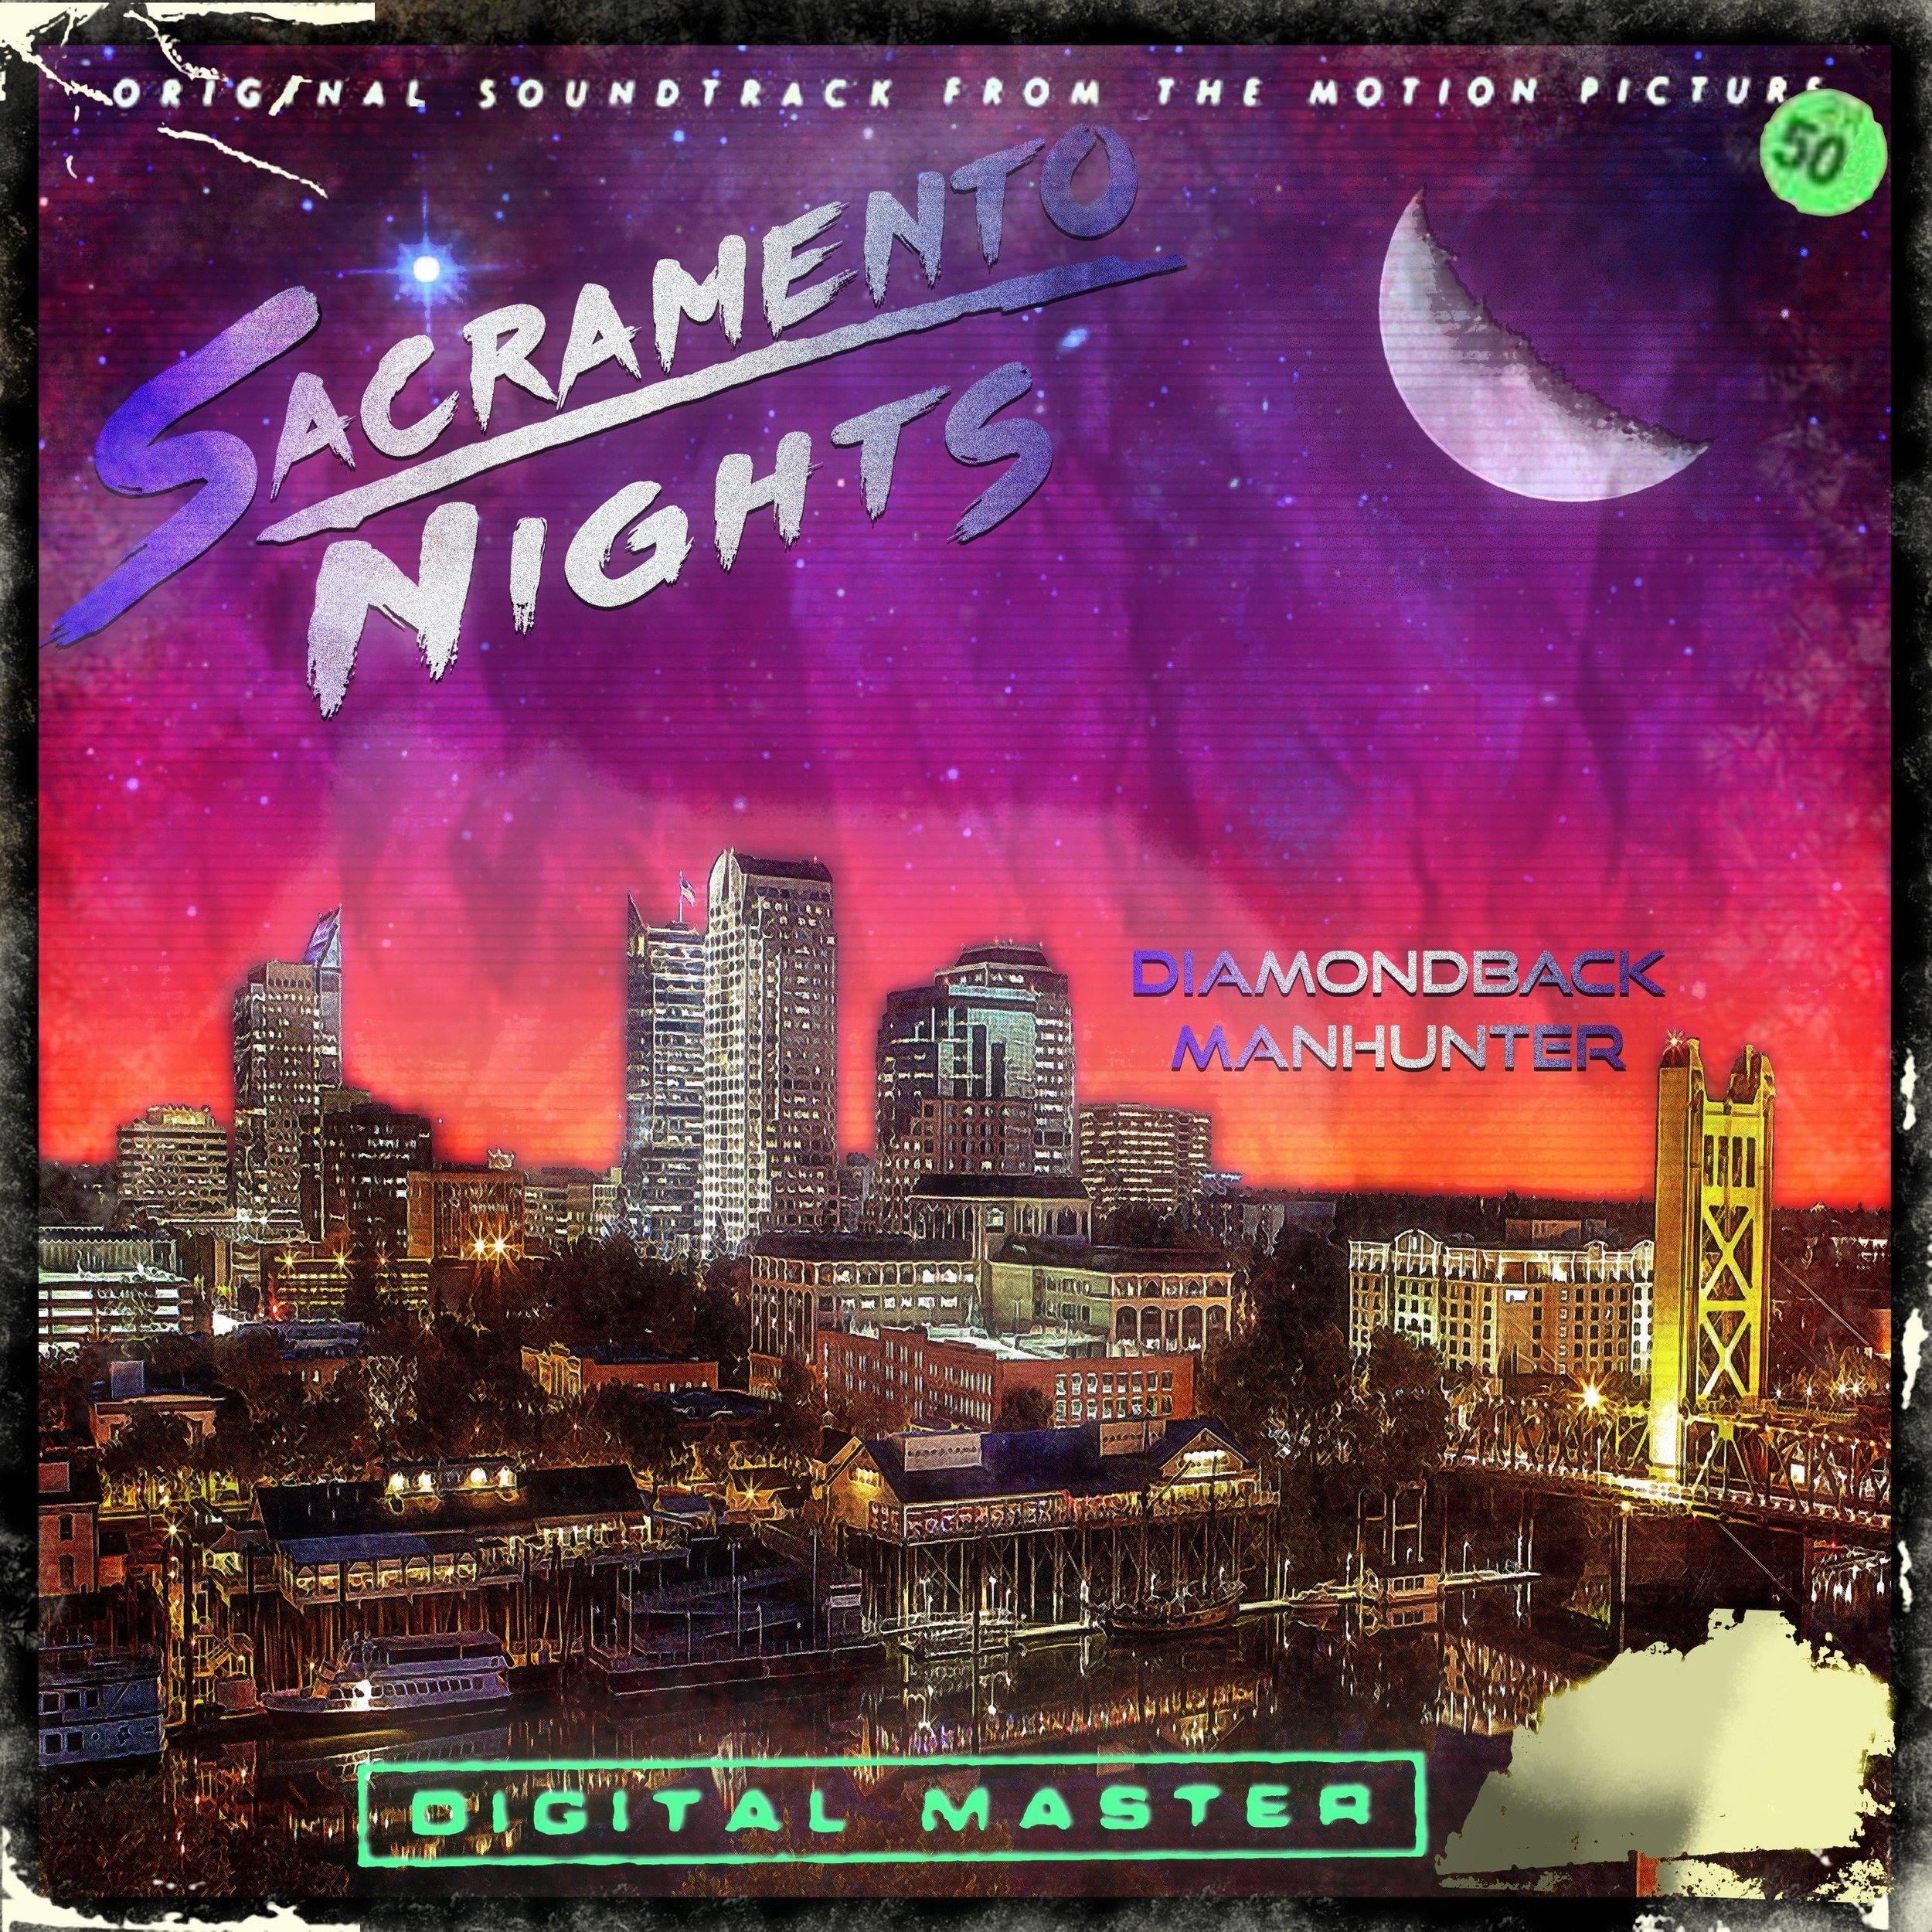 sacramento nights cover.jpg